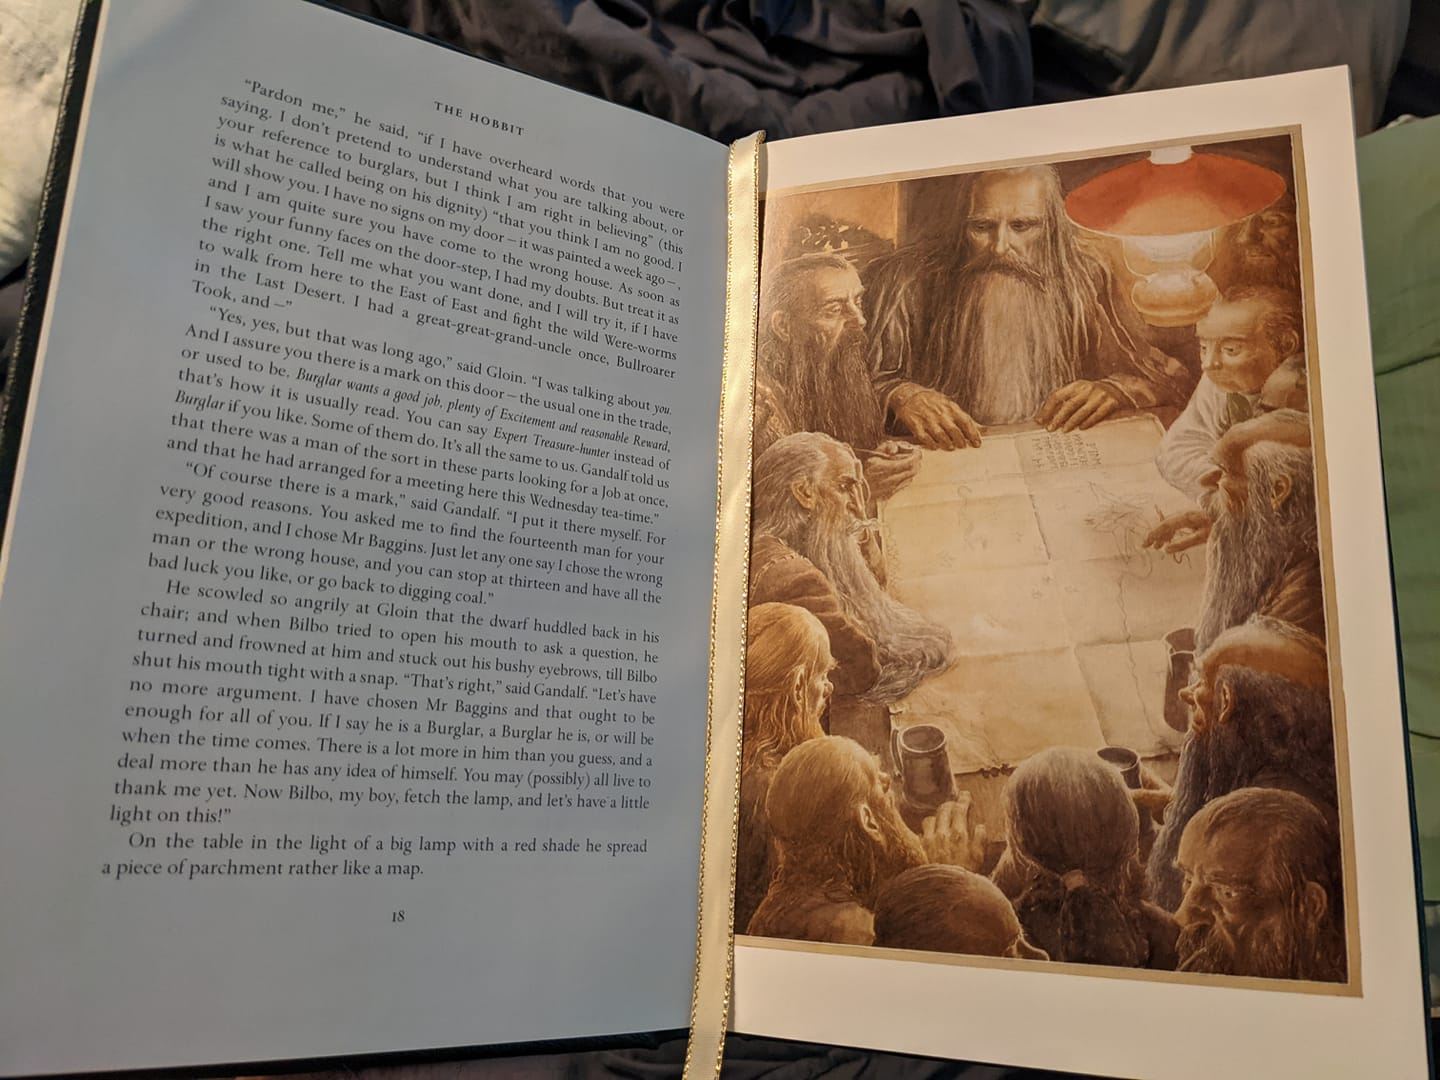 A photo of pages from The Hobbit